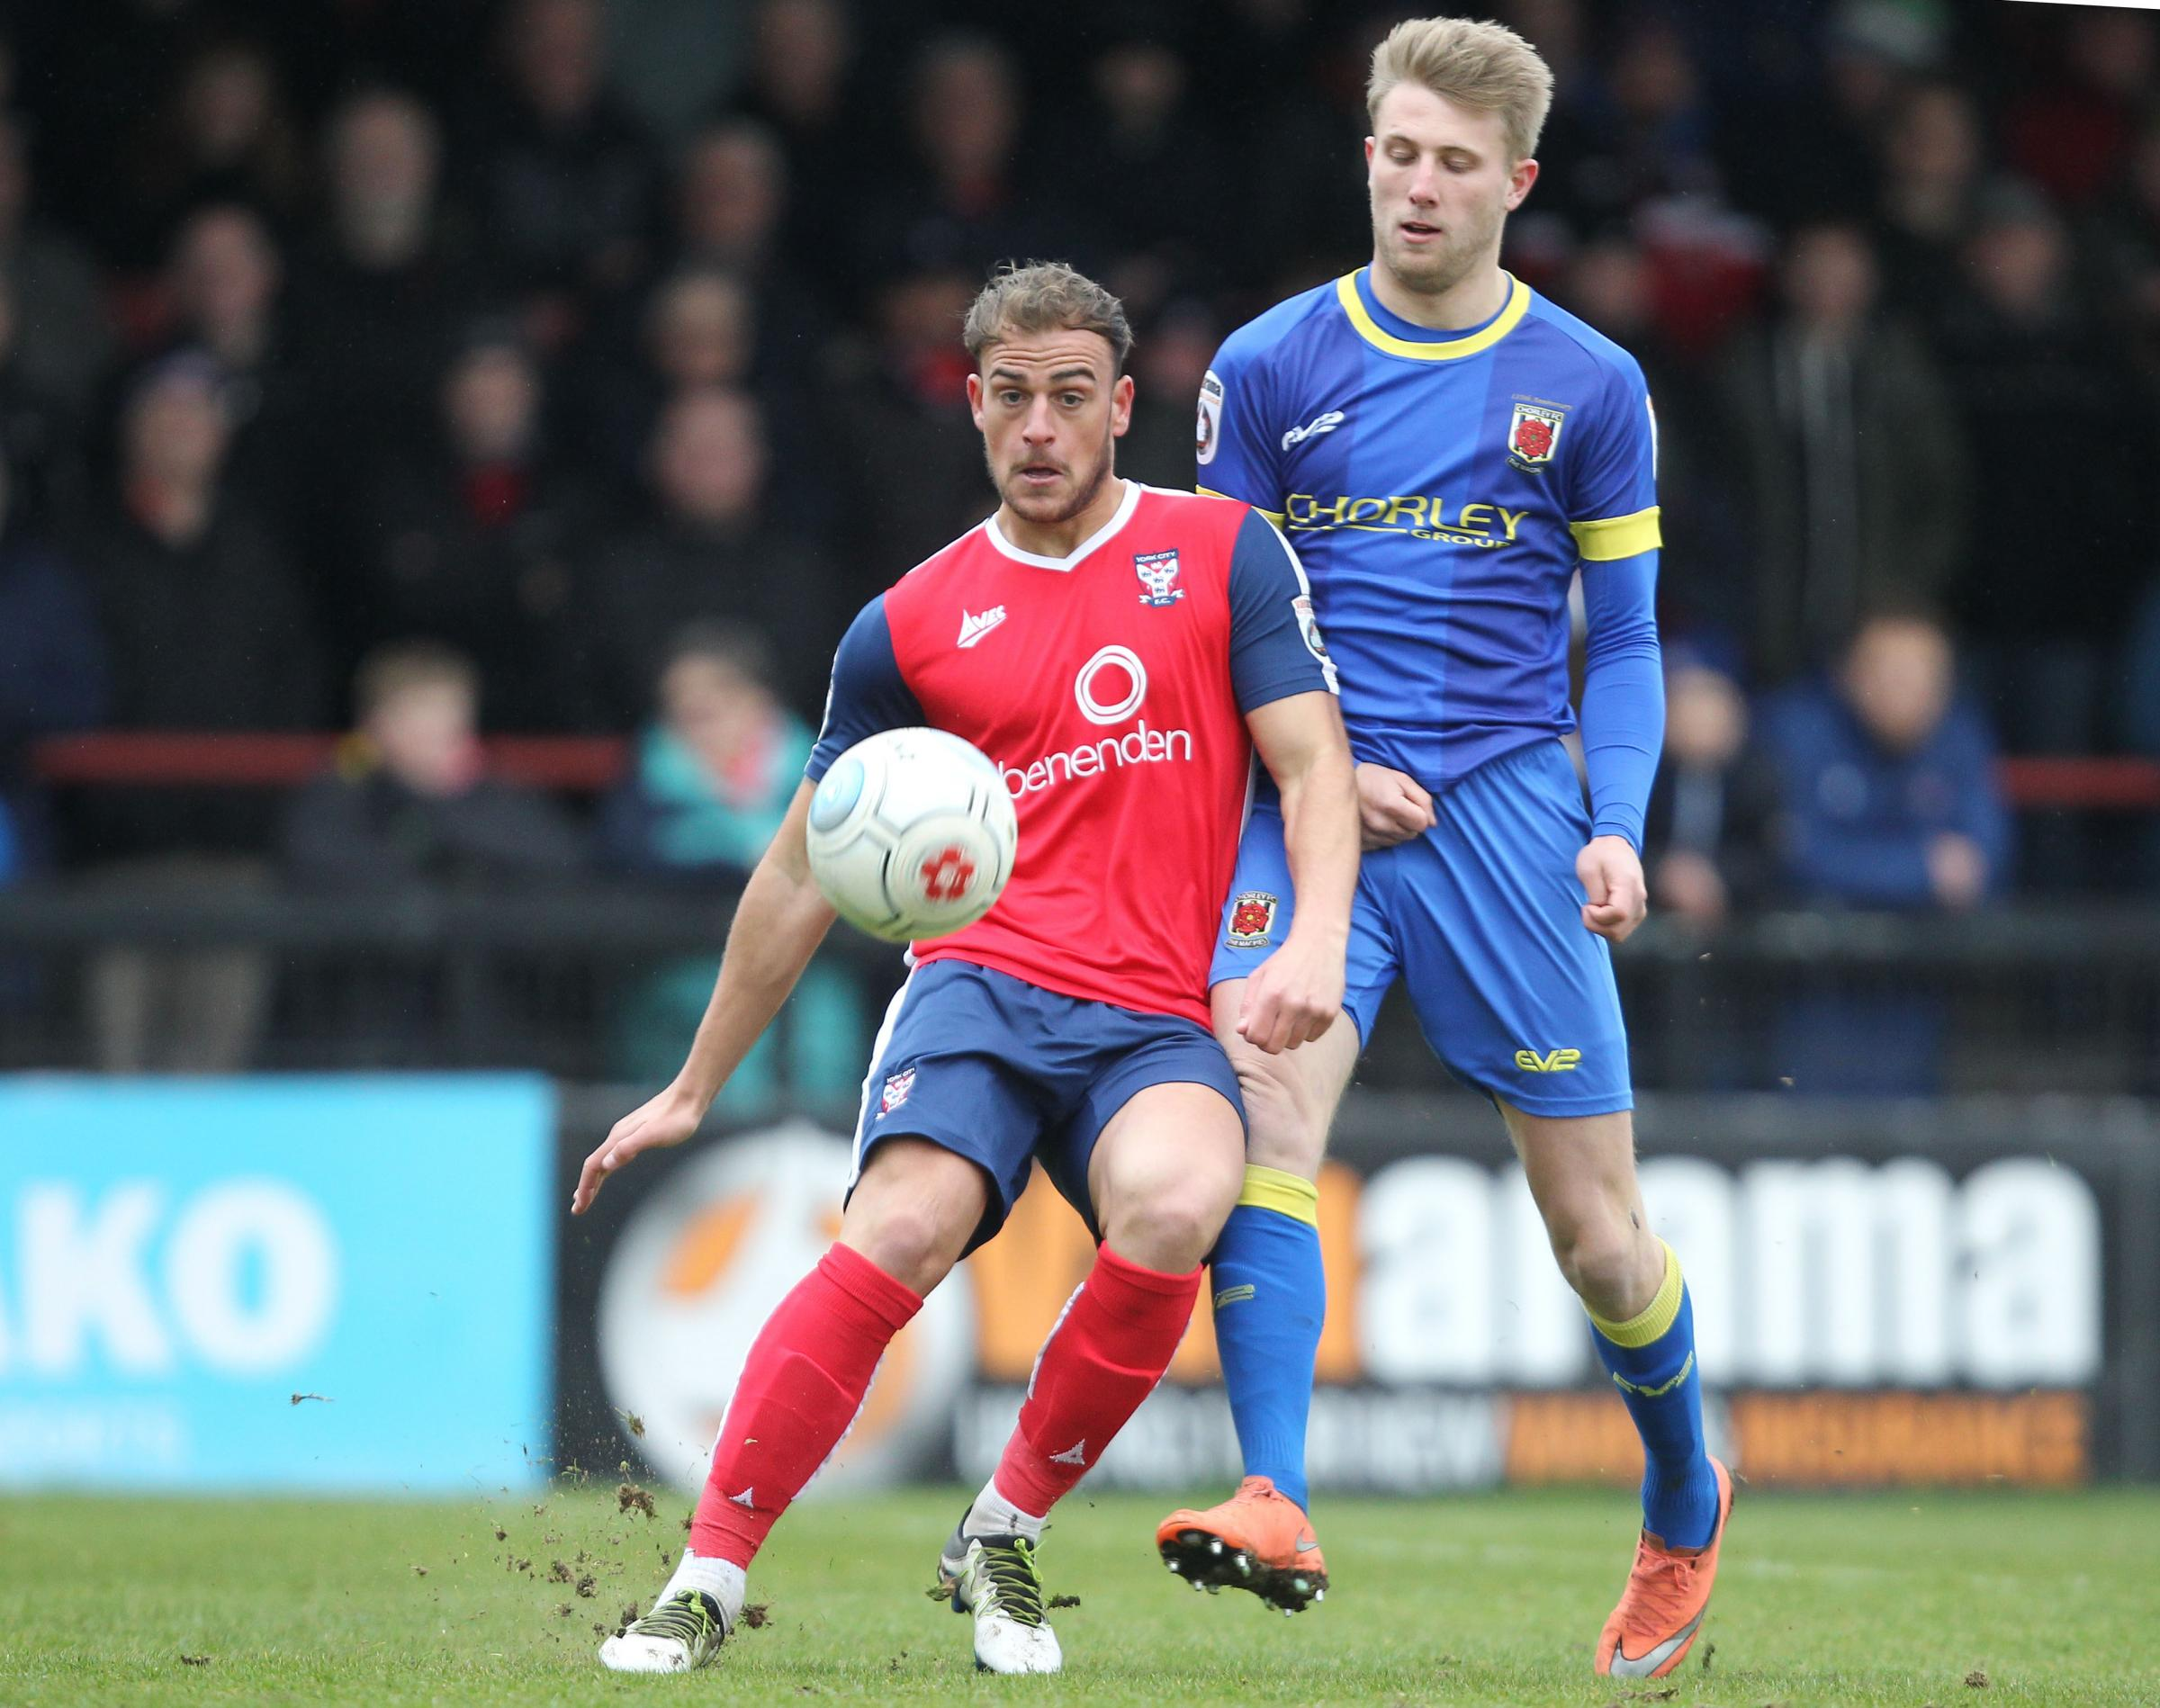 NEW SIGNING: Jonny Burn, pictured last season playing for York City, has signed for Darlington. Picture: GORDON CLAYTON